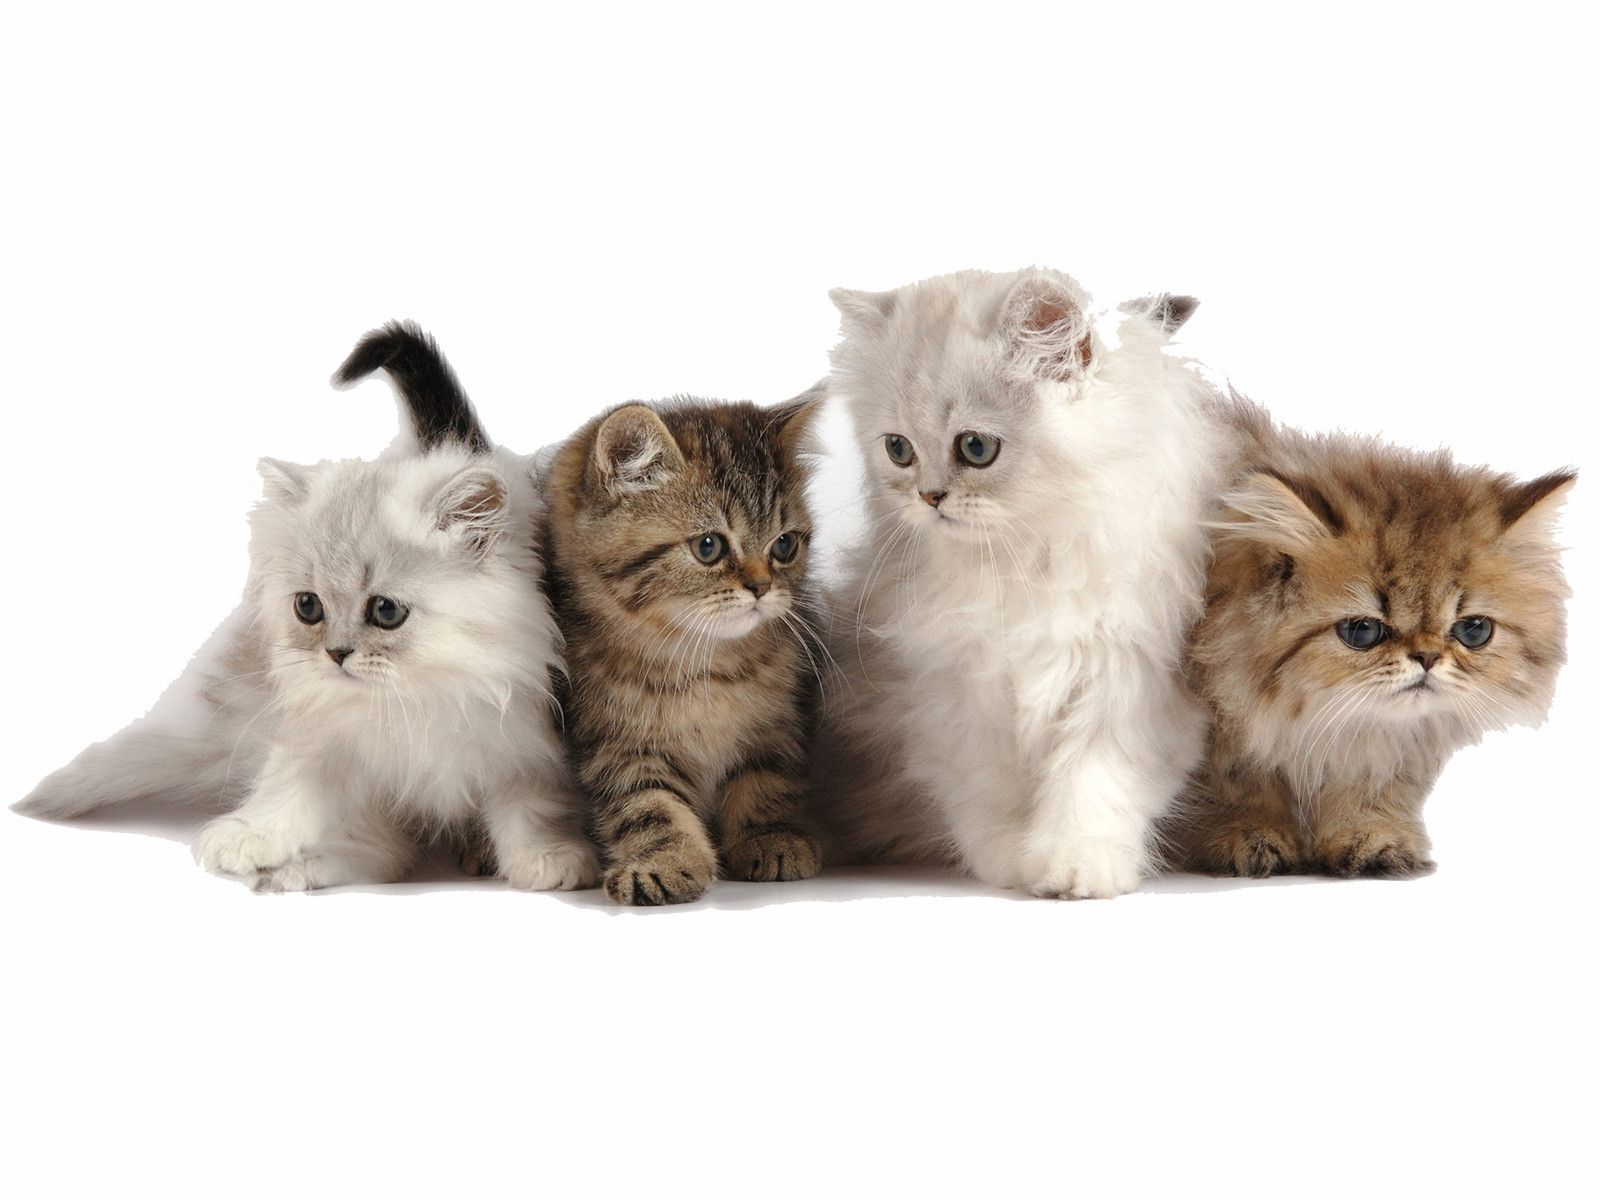 Free Cute Kitten Wallpapers Kittens Cutest Cute Cats Photos Kitten Wallpaper